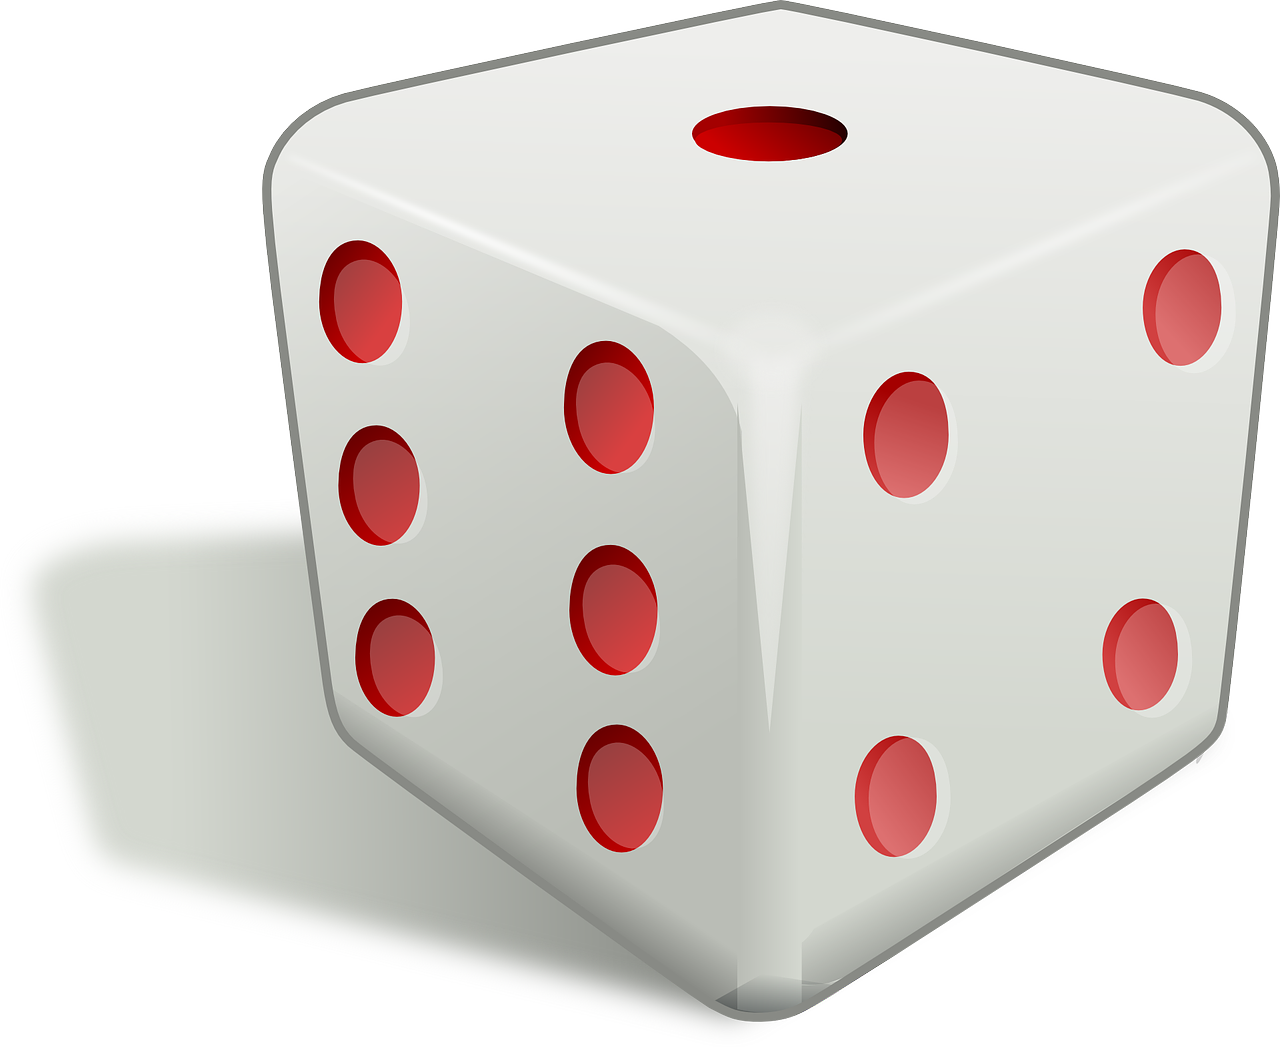 dice,cube,die,game,gambling,luck,chance,numbers,random,gamble,game of luck,casino,game of chance,play,free vector graphics,free pictures, free photos, free images, royalty free, free illustrations, public domain